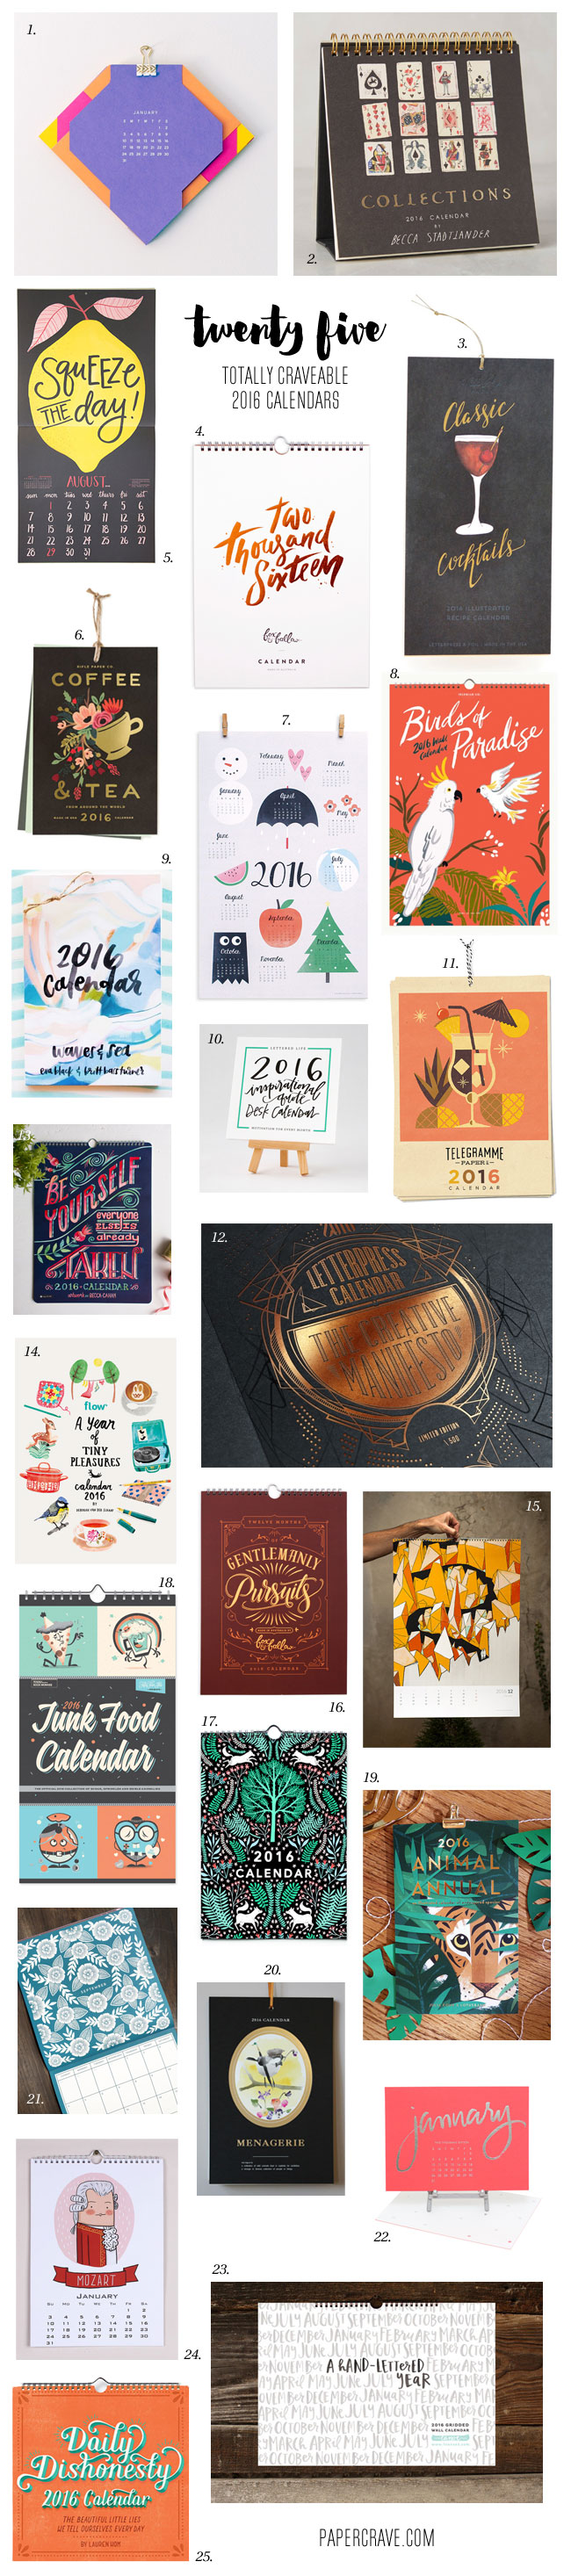 http://i0.wp.com/papercrave.com/wp-content/uploads/2015/12/25-totally-craveable-2016-calendars.jpg?resize=650%2C2933